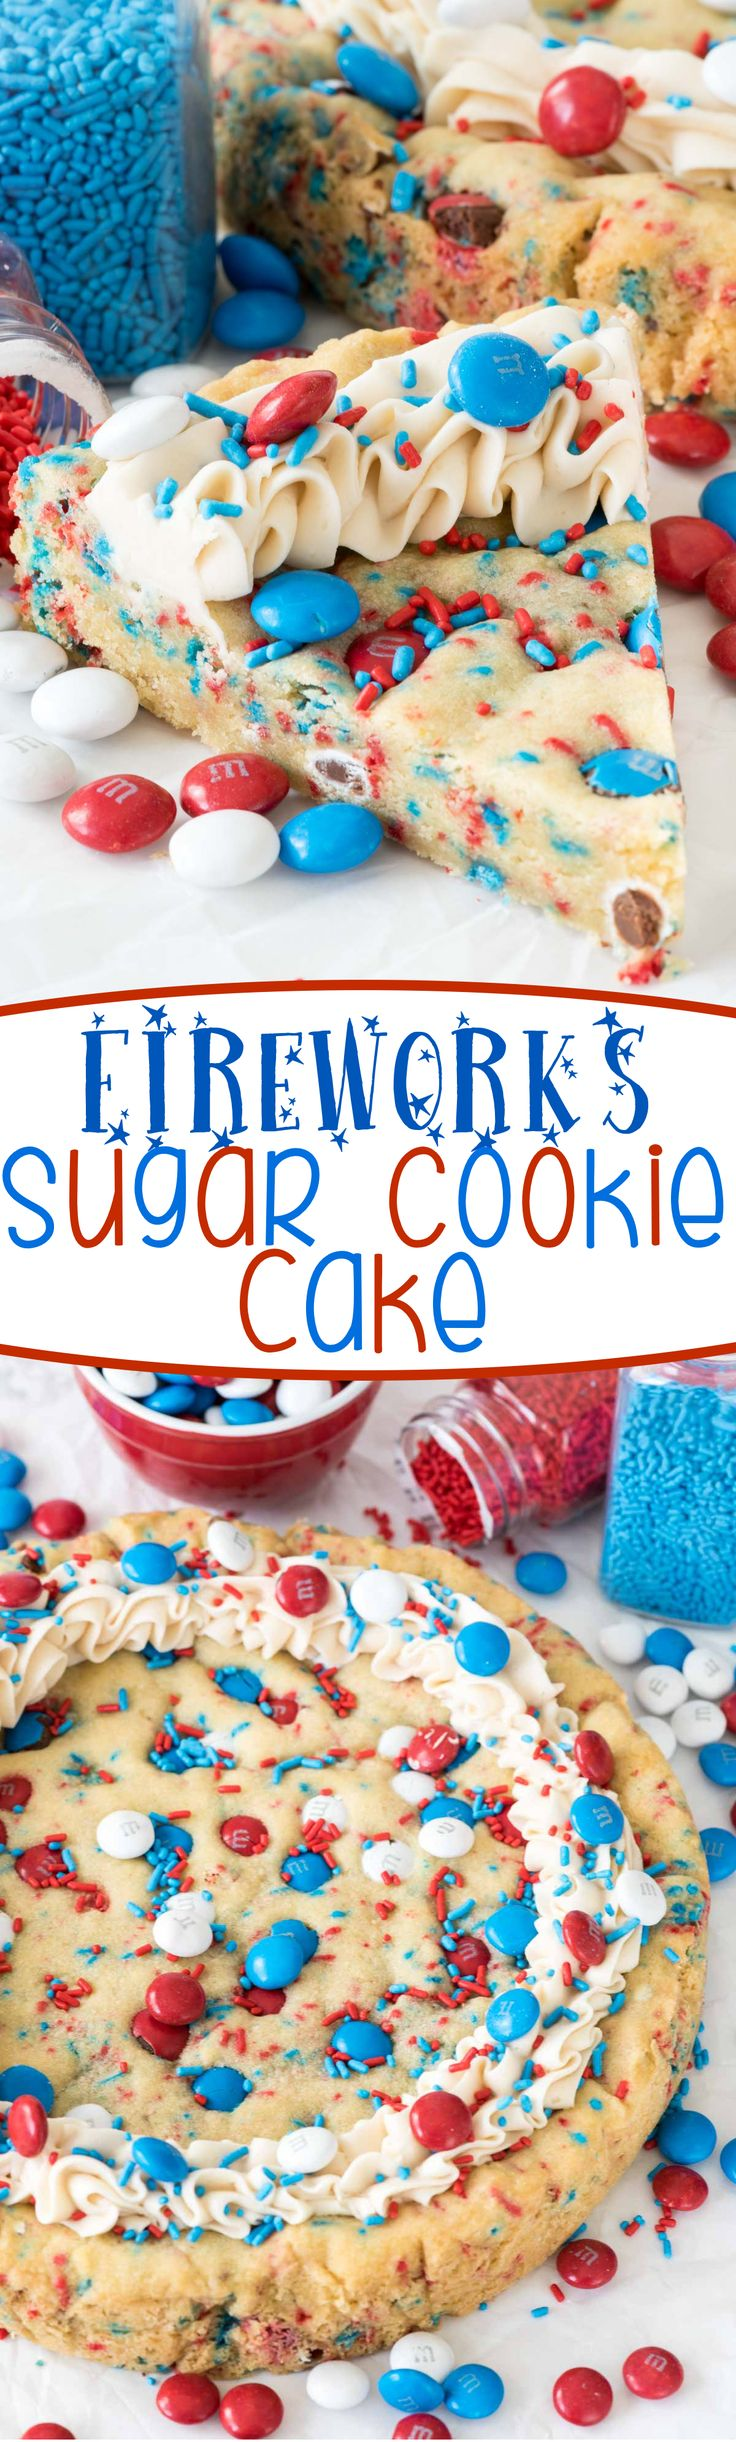 Fireworks Sugar Cookie Cake Recipe - this EASY sugar cookie recipe is made in a cake pan! Such a great dessert for the 4th of July!